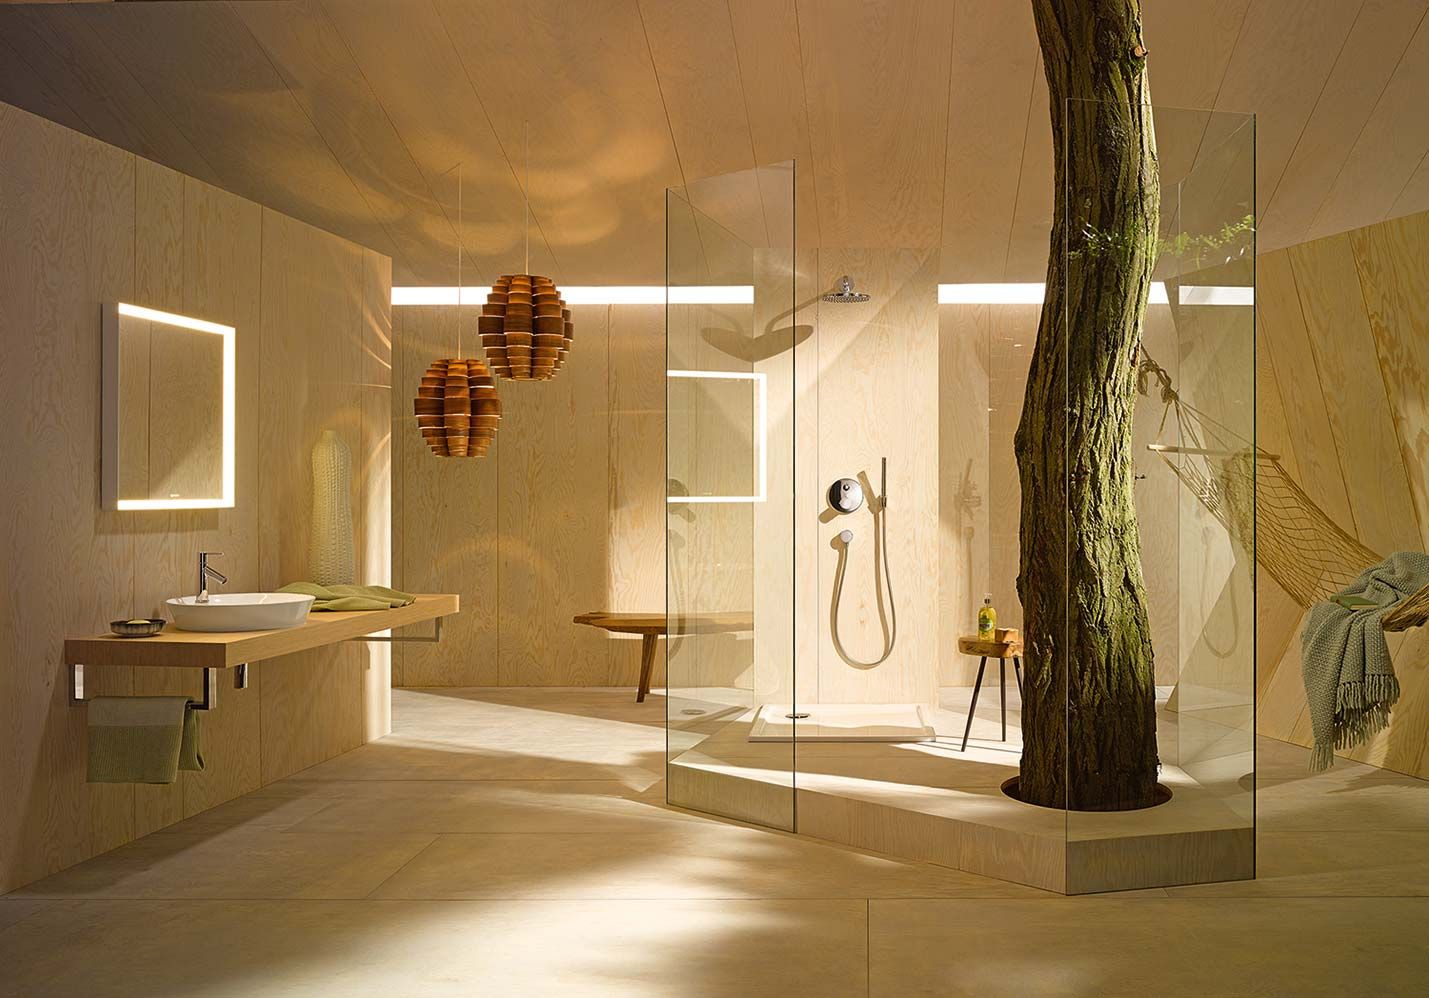 1000 images about salle de bains on pinterest buses red dots and design - Separation Baignoire Wc